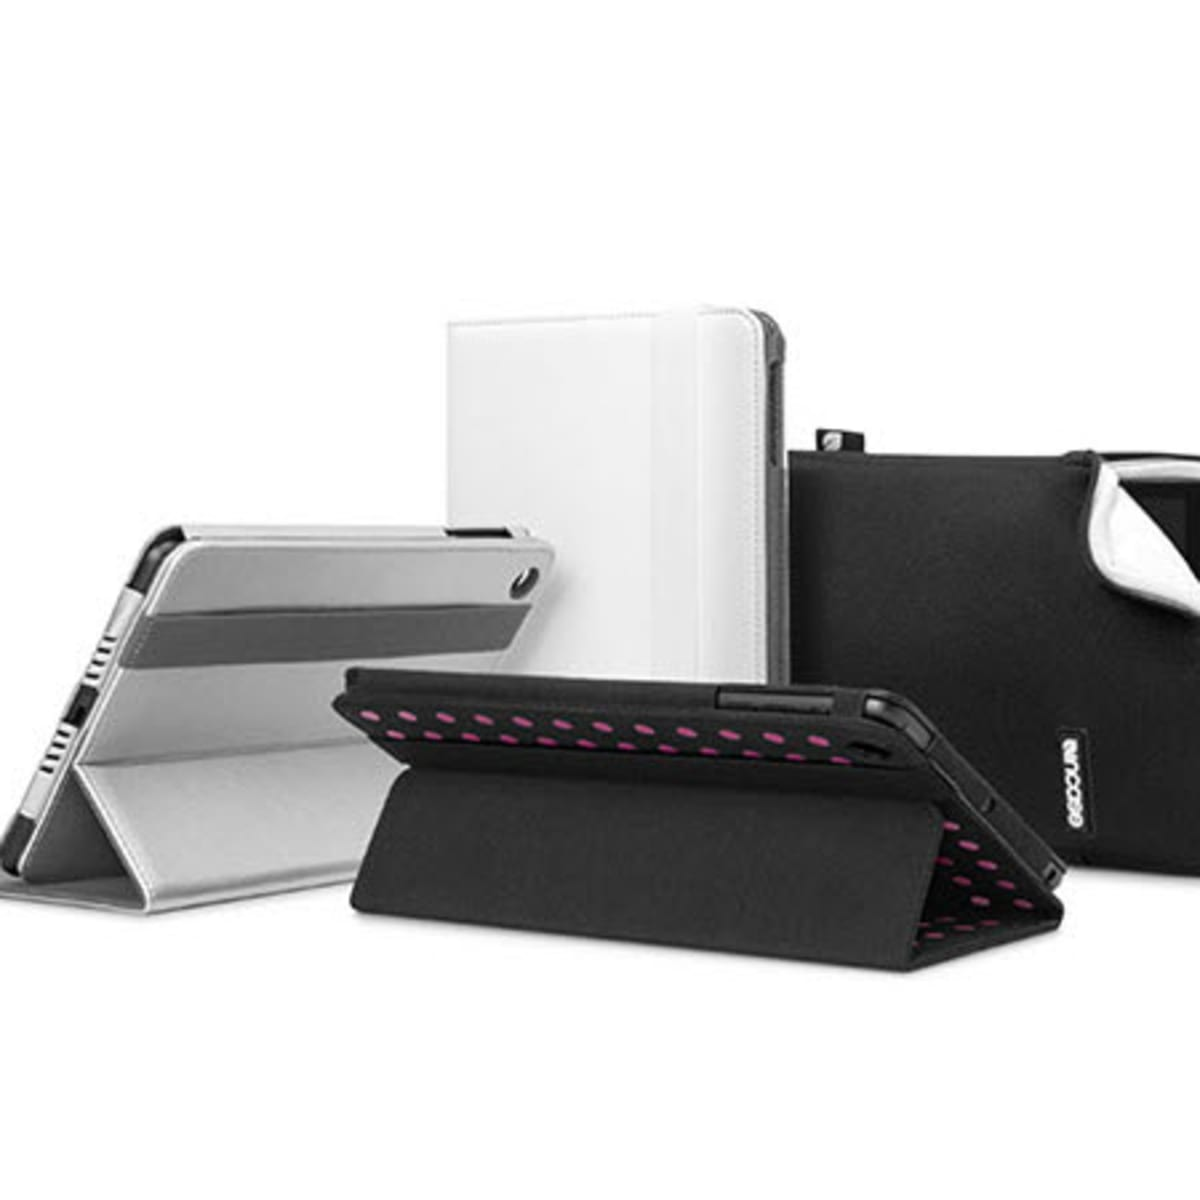 Incase Origami Jacket for iPad mini 2 and 3 - Black/Lime - CL60507 ... | 1200x1200